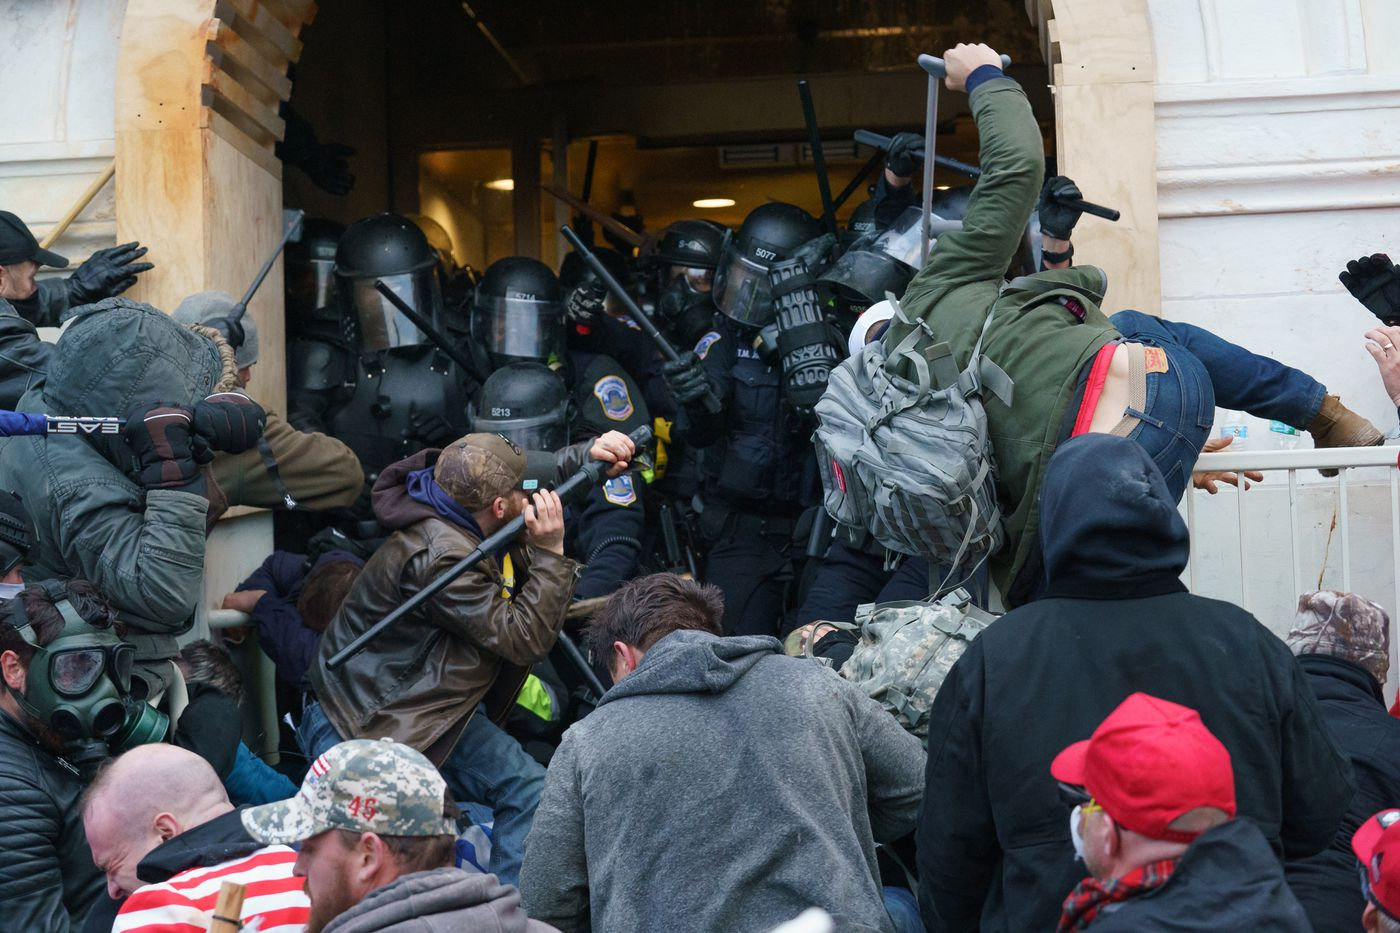 Supporters of President Donald Trump use bats, batons, and other items during a riot as they fight police defending an entrance to the U.S. Capitol in Washington, D.C., on Jan. 6, 2021.